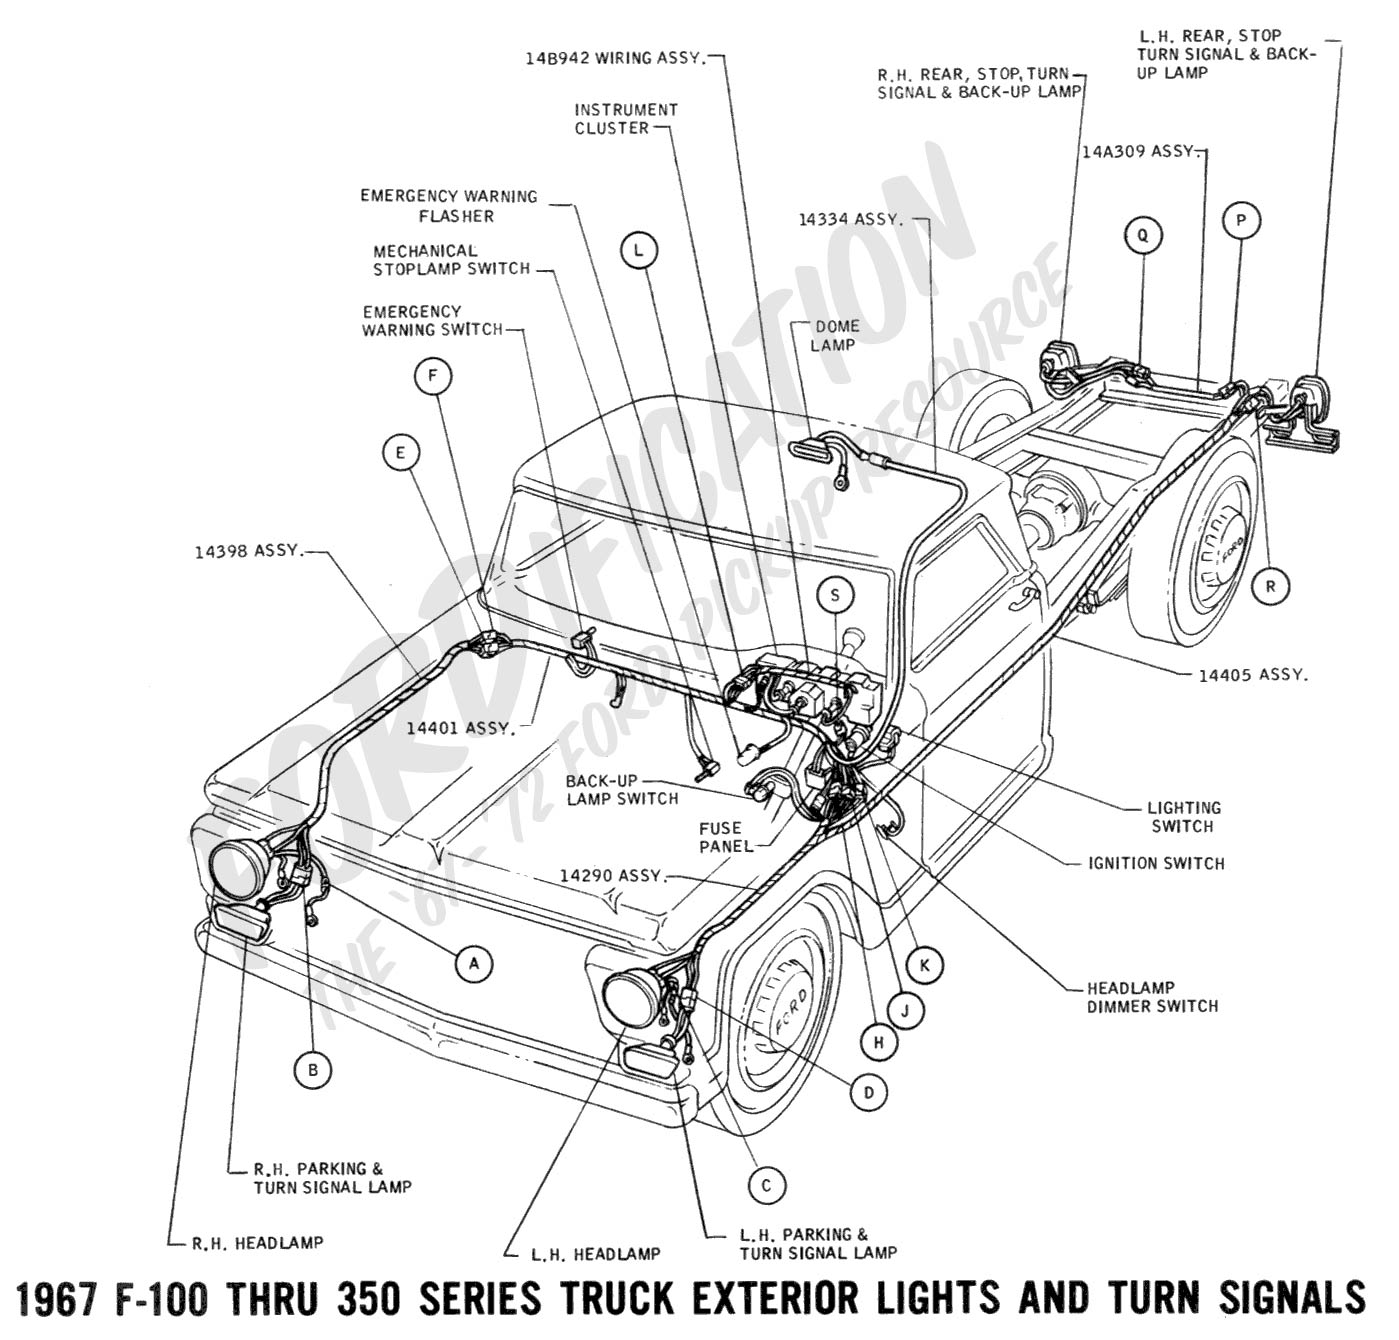 1967 F-100 thru F-350 exterior lights and turn signals - 01